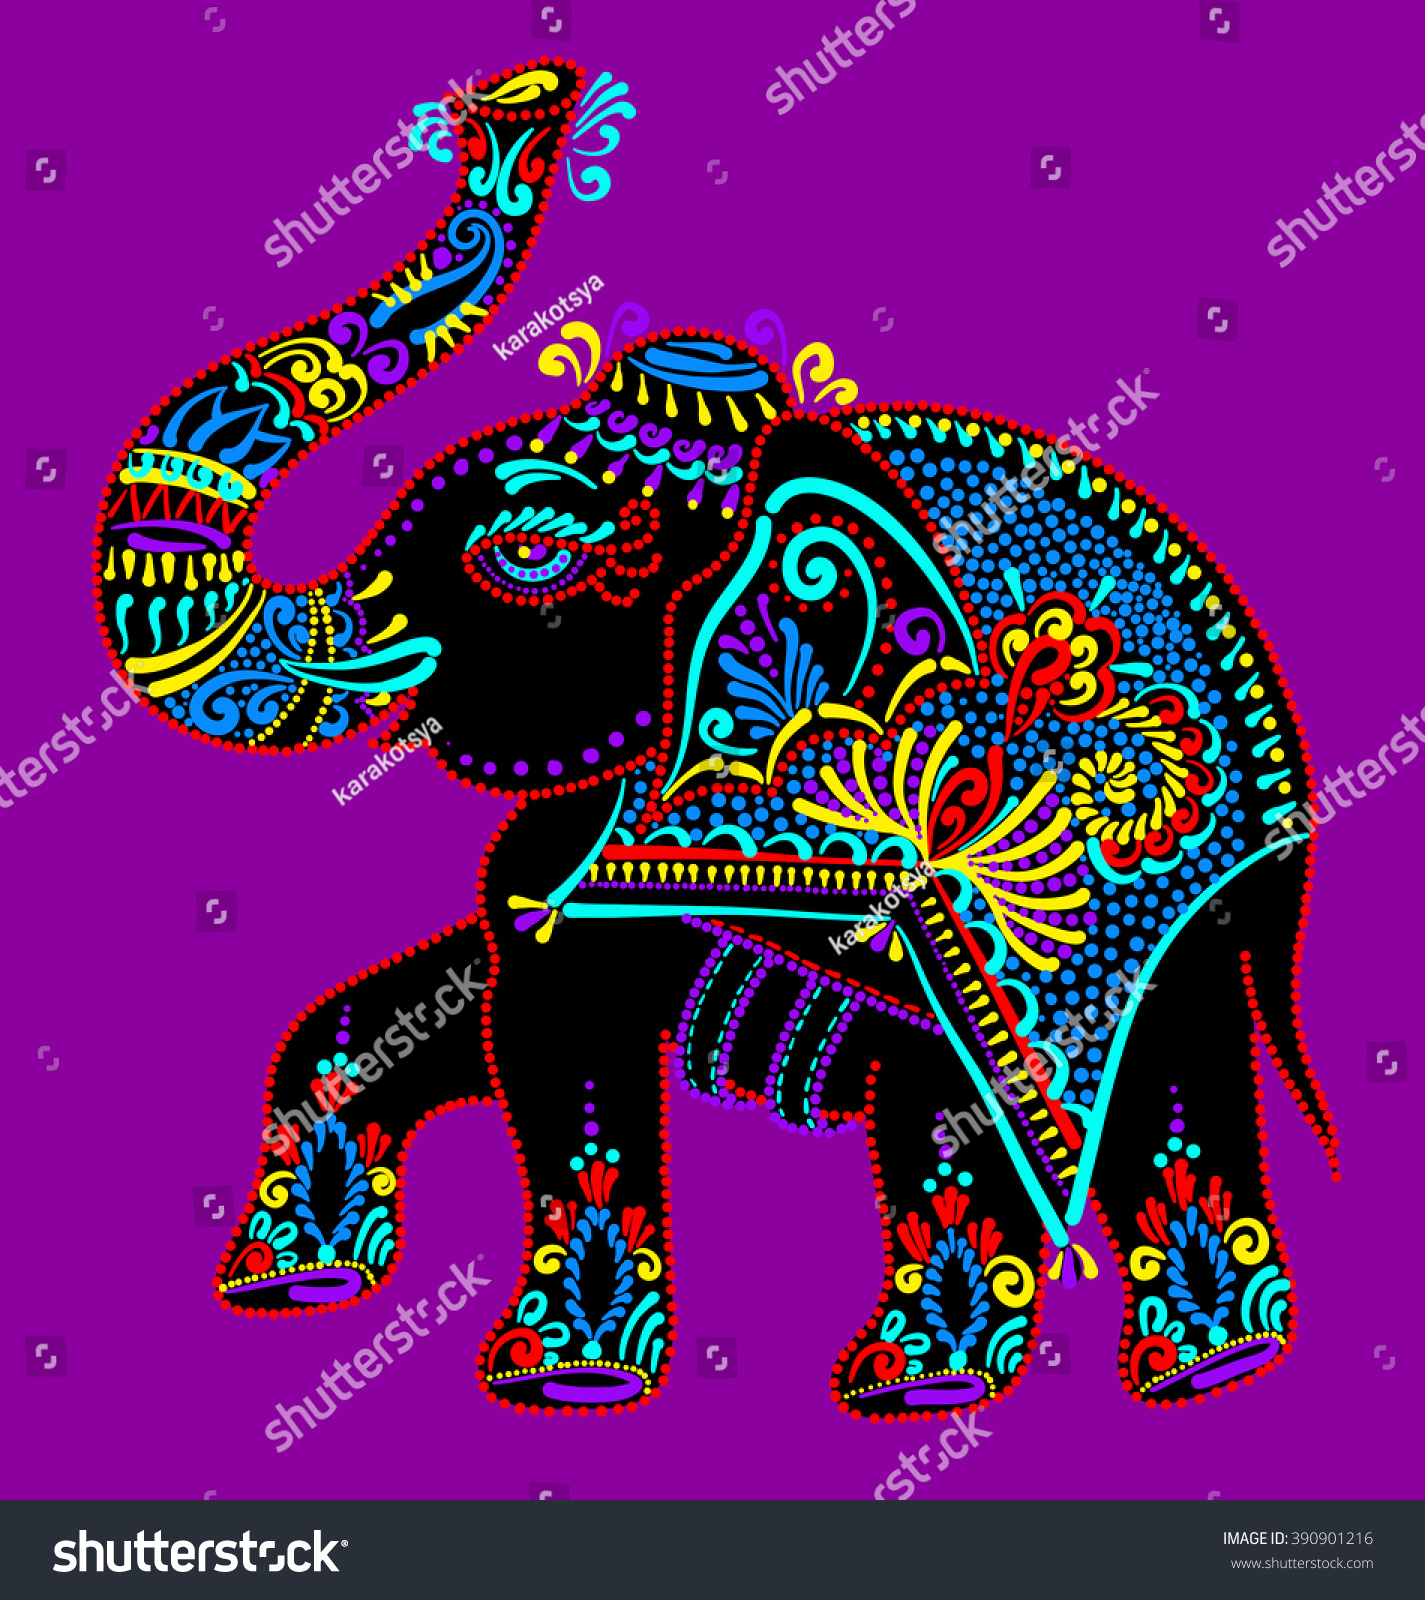 100 Wall Decals Indian Elephant Tribal Green Ganesha